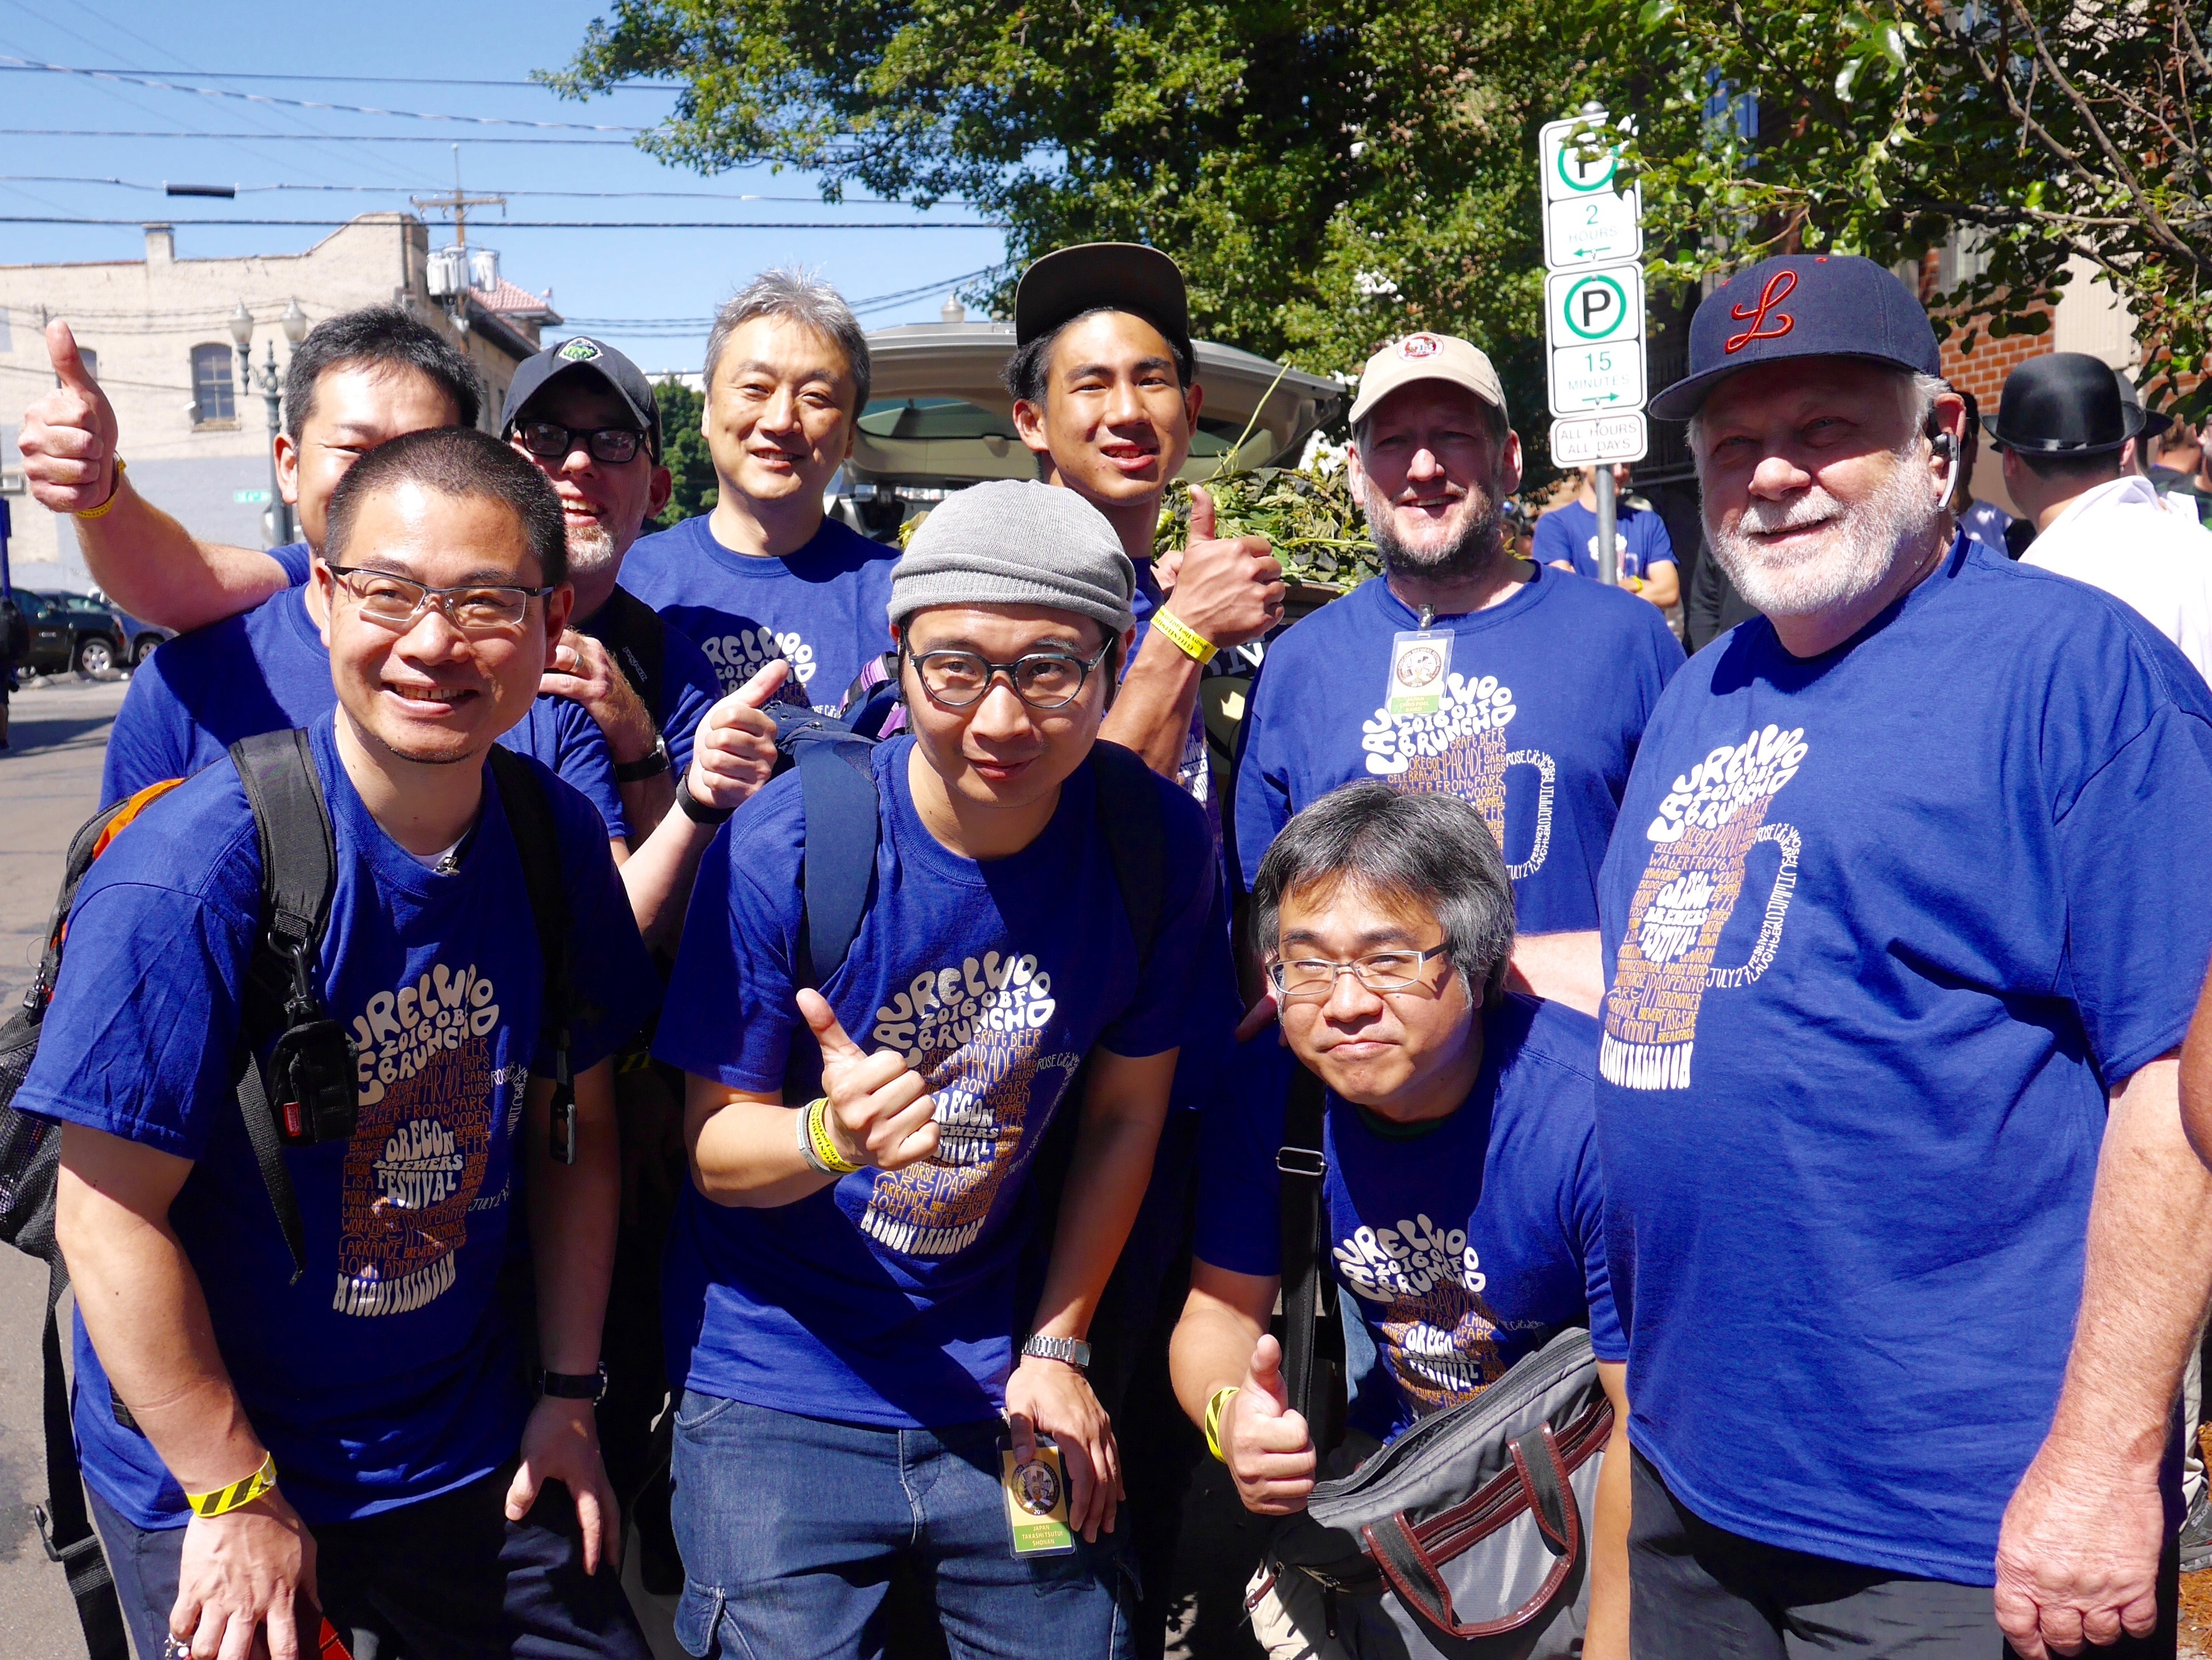 Art Larrance (far right) gathers with many of the international brewers from Asia. (photo by Cat Stelzer)